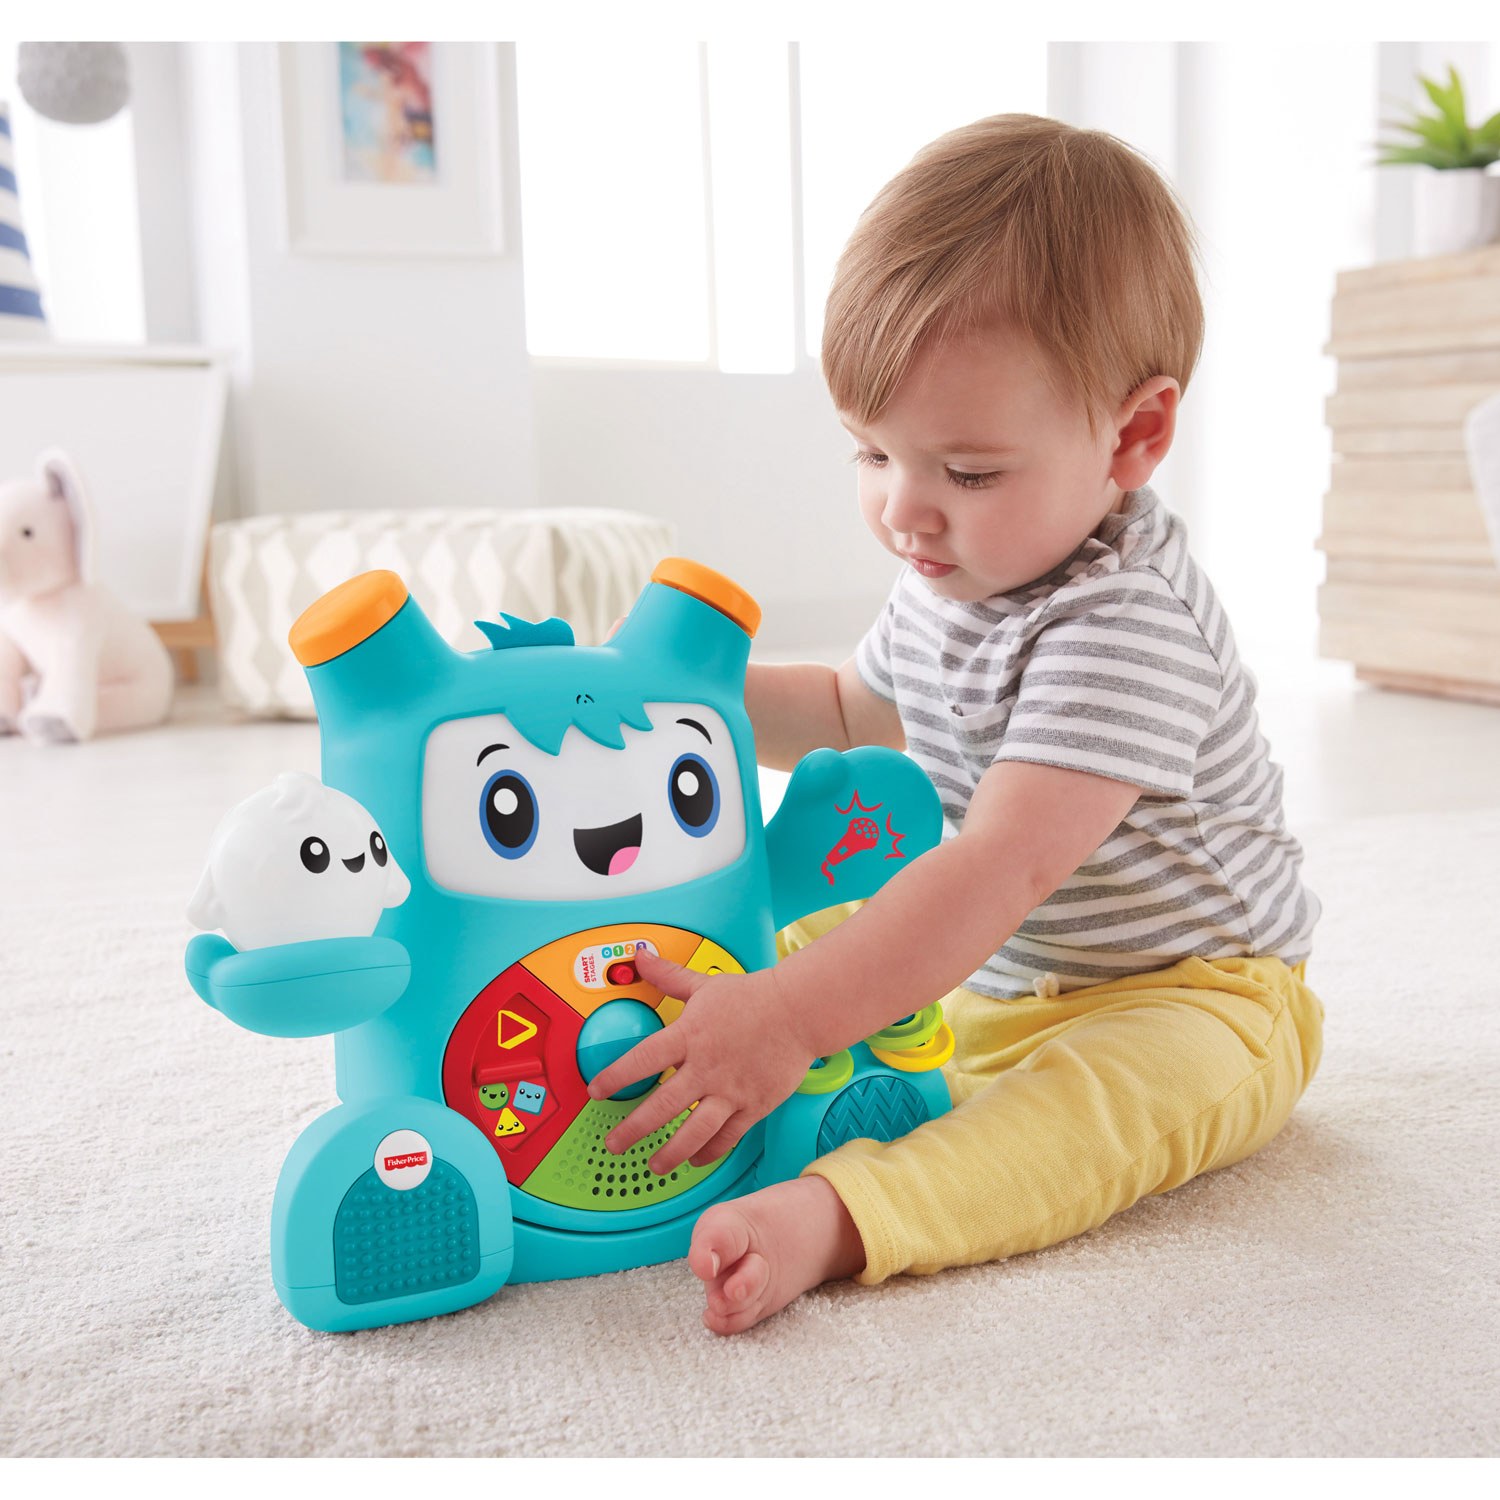 Fisher Price Smart Moves Rockit Musical Toy Learning Educational Infant Toaster Toys Best Buy Canada